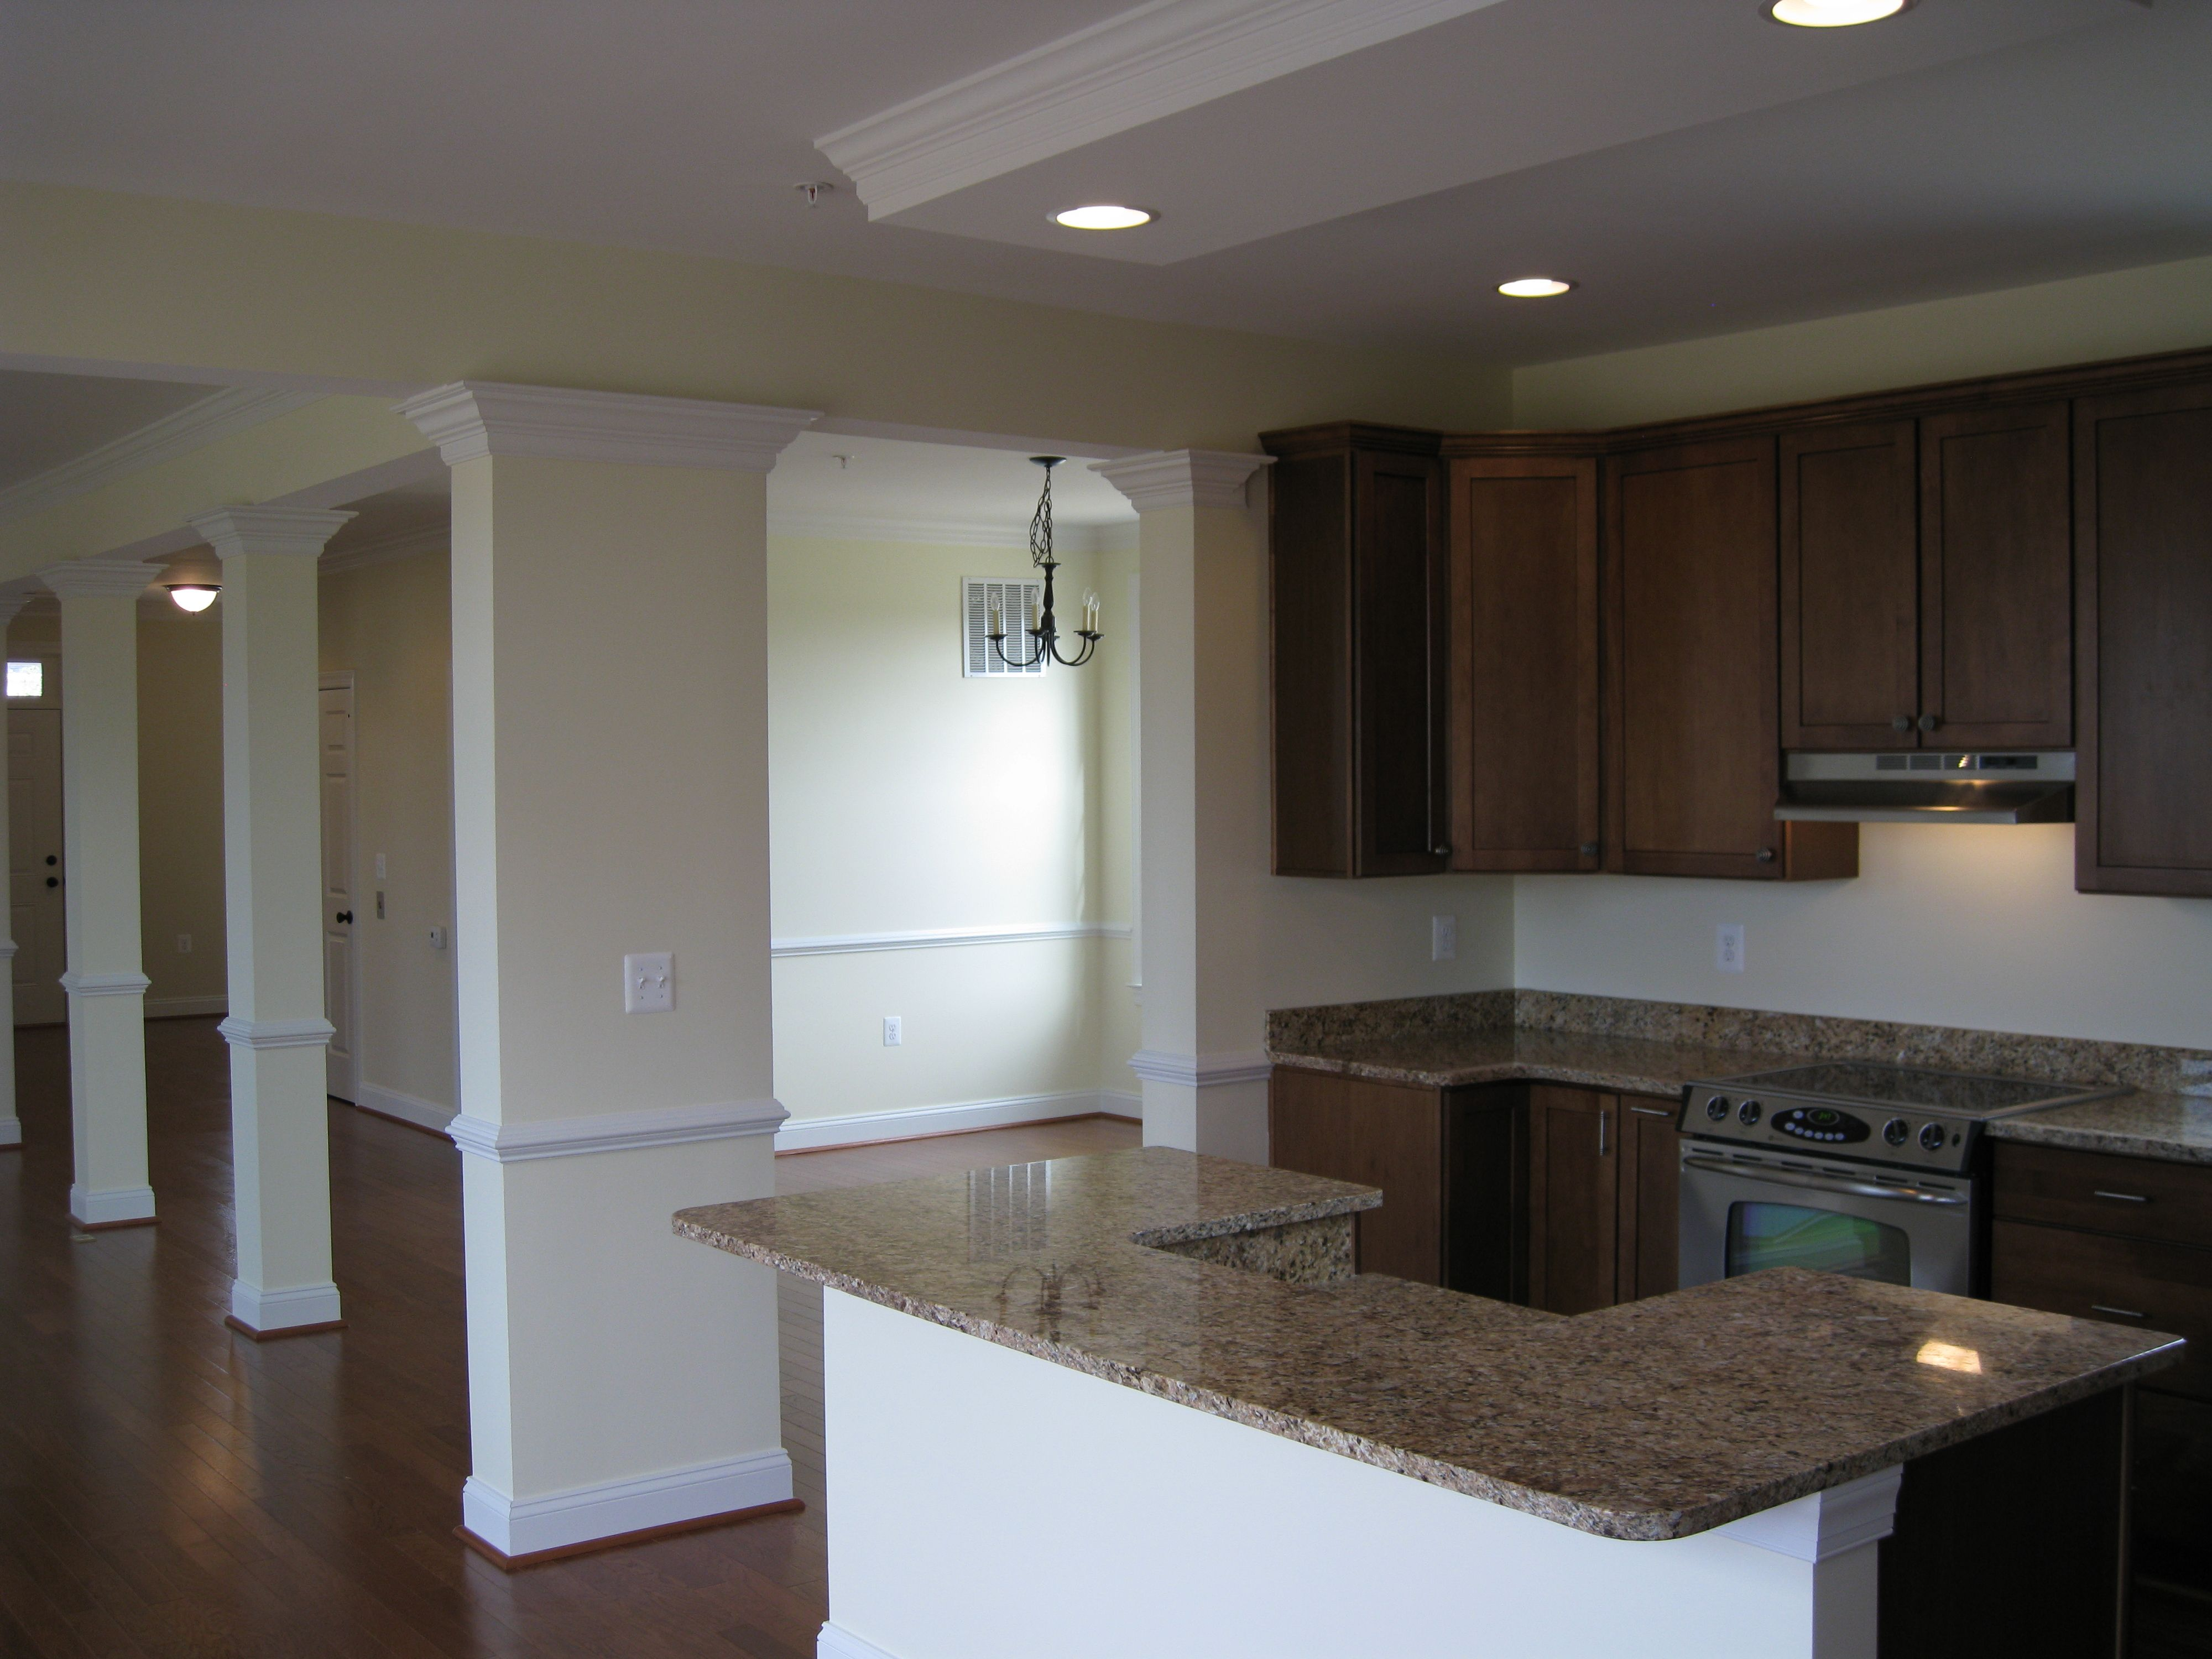 Kitchen featured in the Port Royal Executive By Covell Communities in Eastern Shore, MD